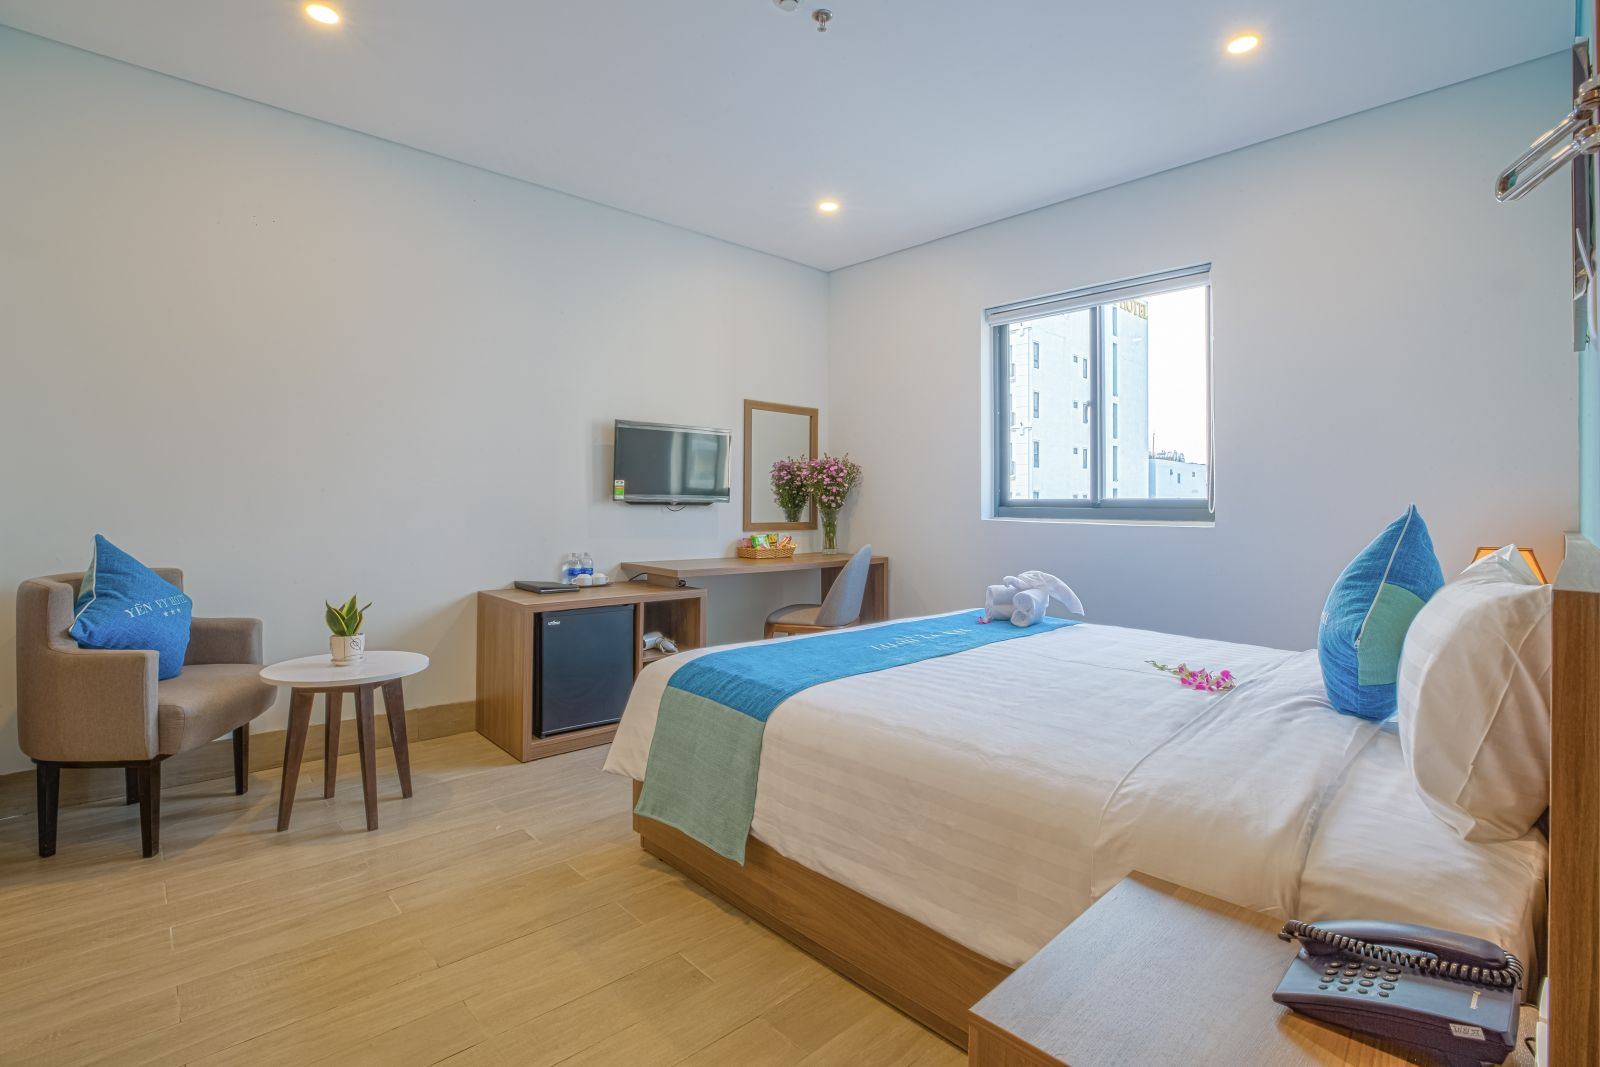 Deluxe Double Room - Yến Vy Hotel